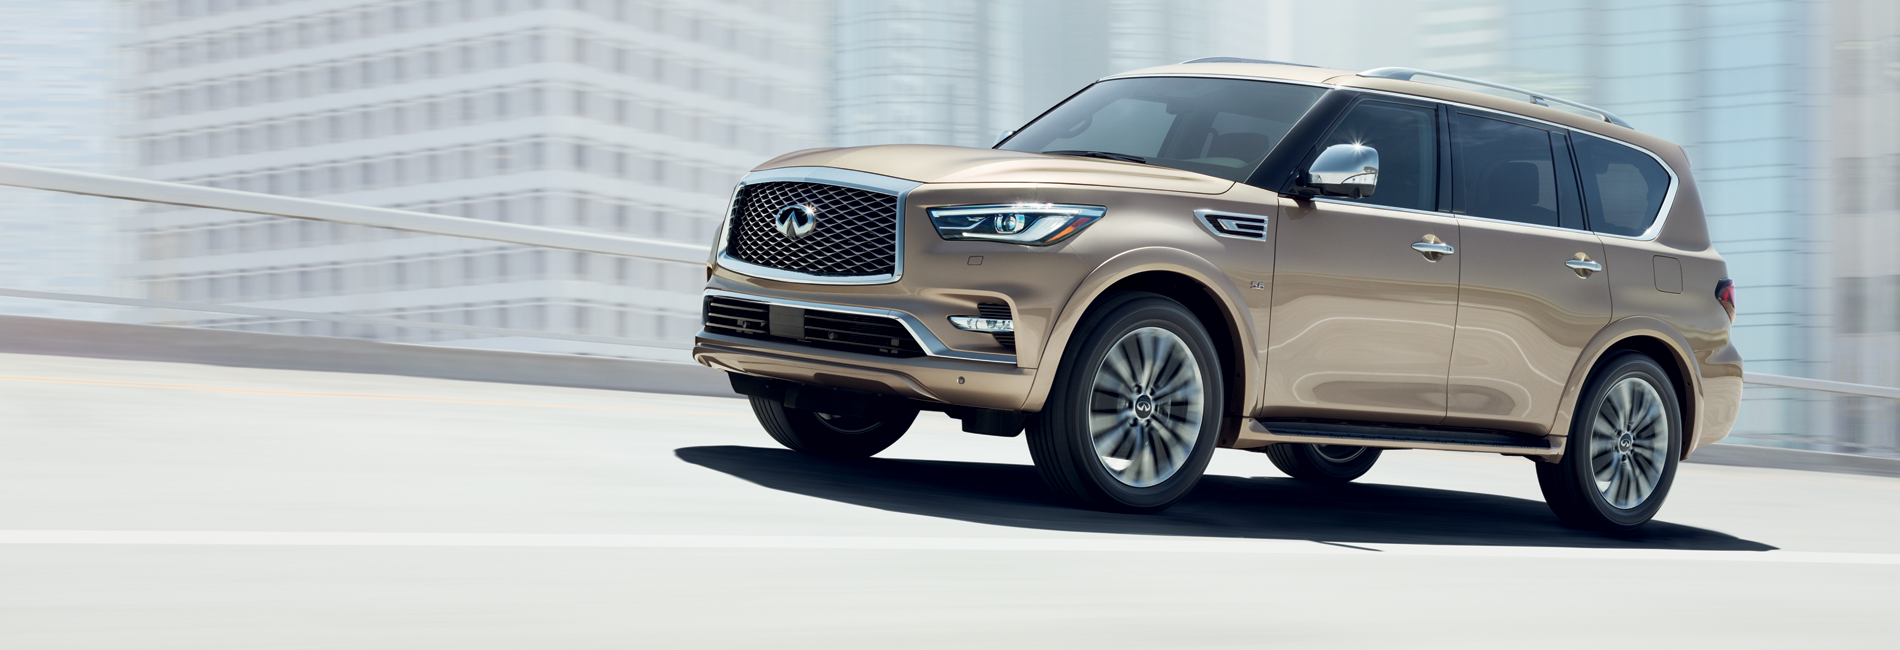 2018 INFINITI QX80 for Sale in Merrillville, IN